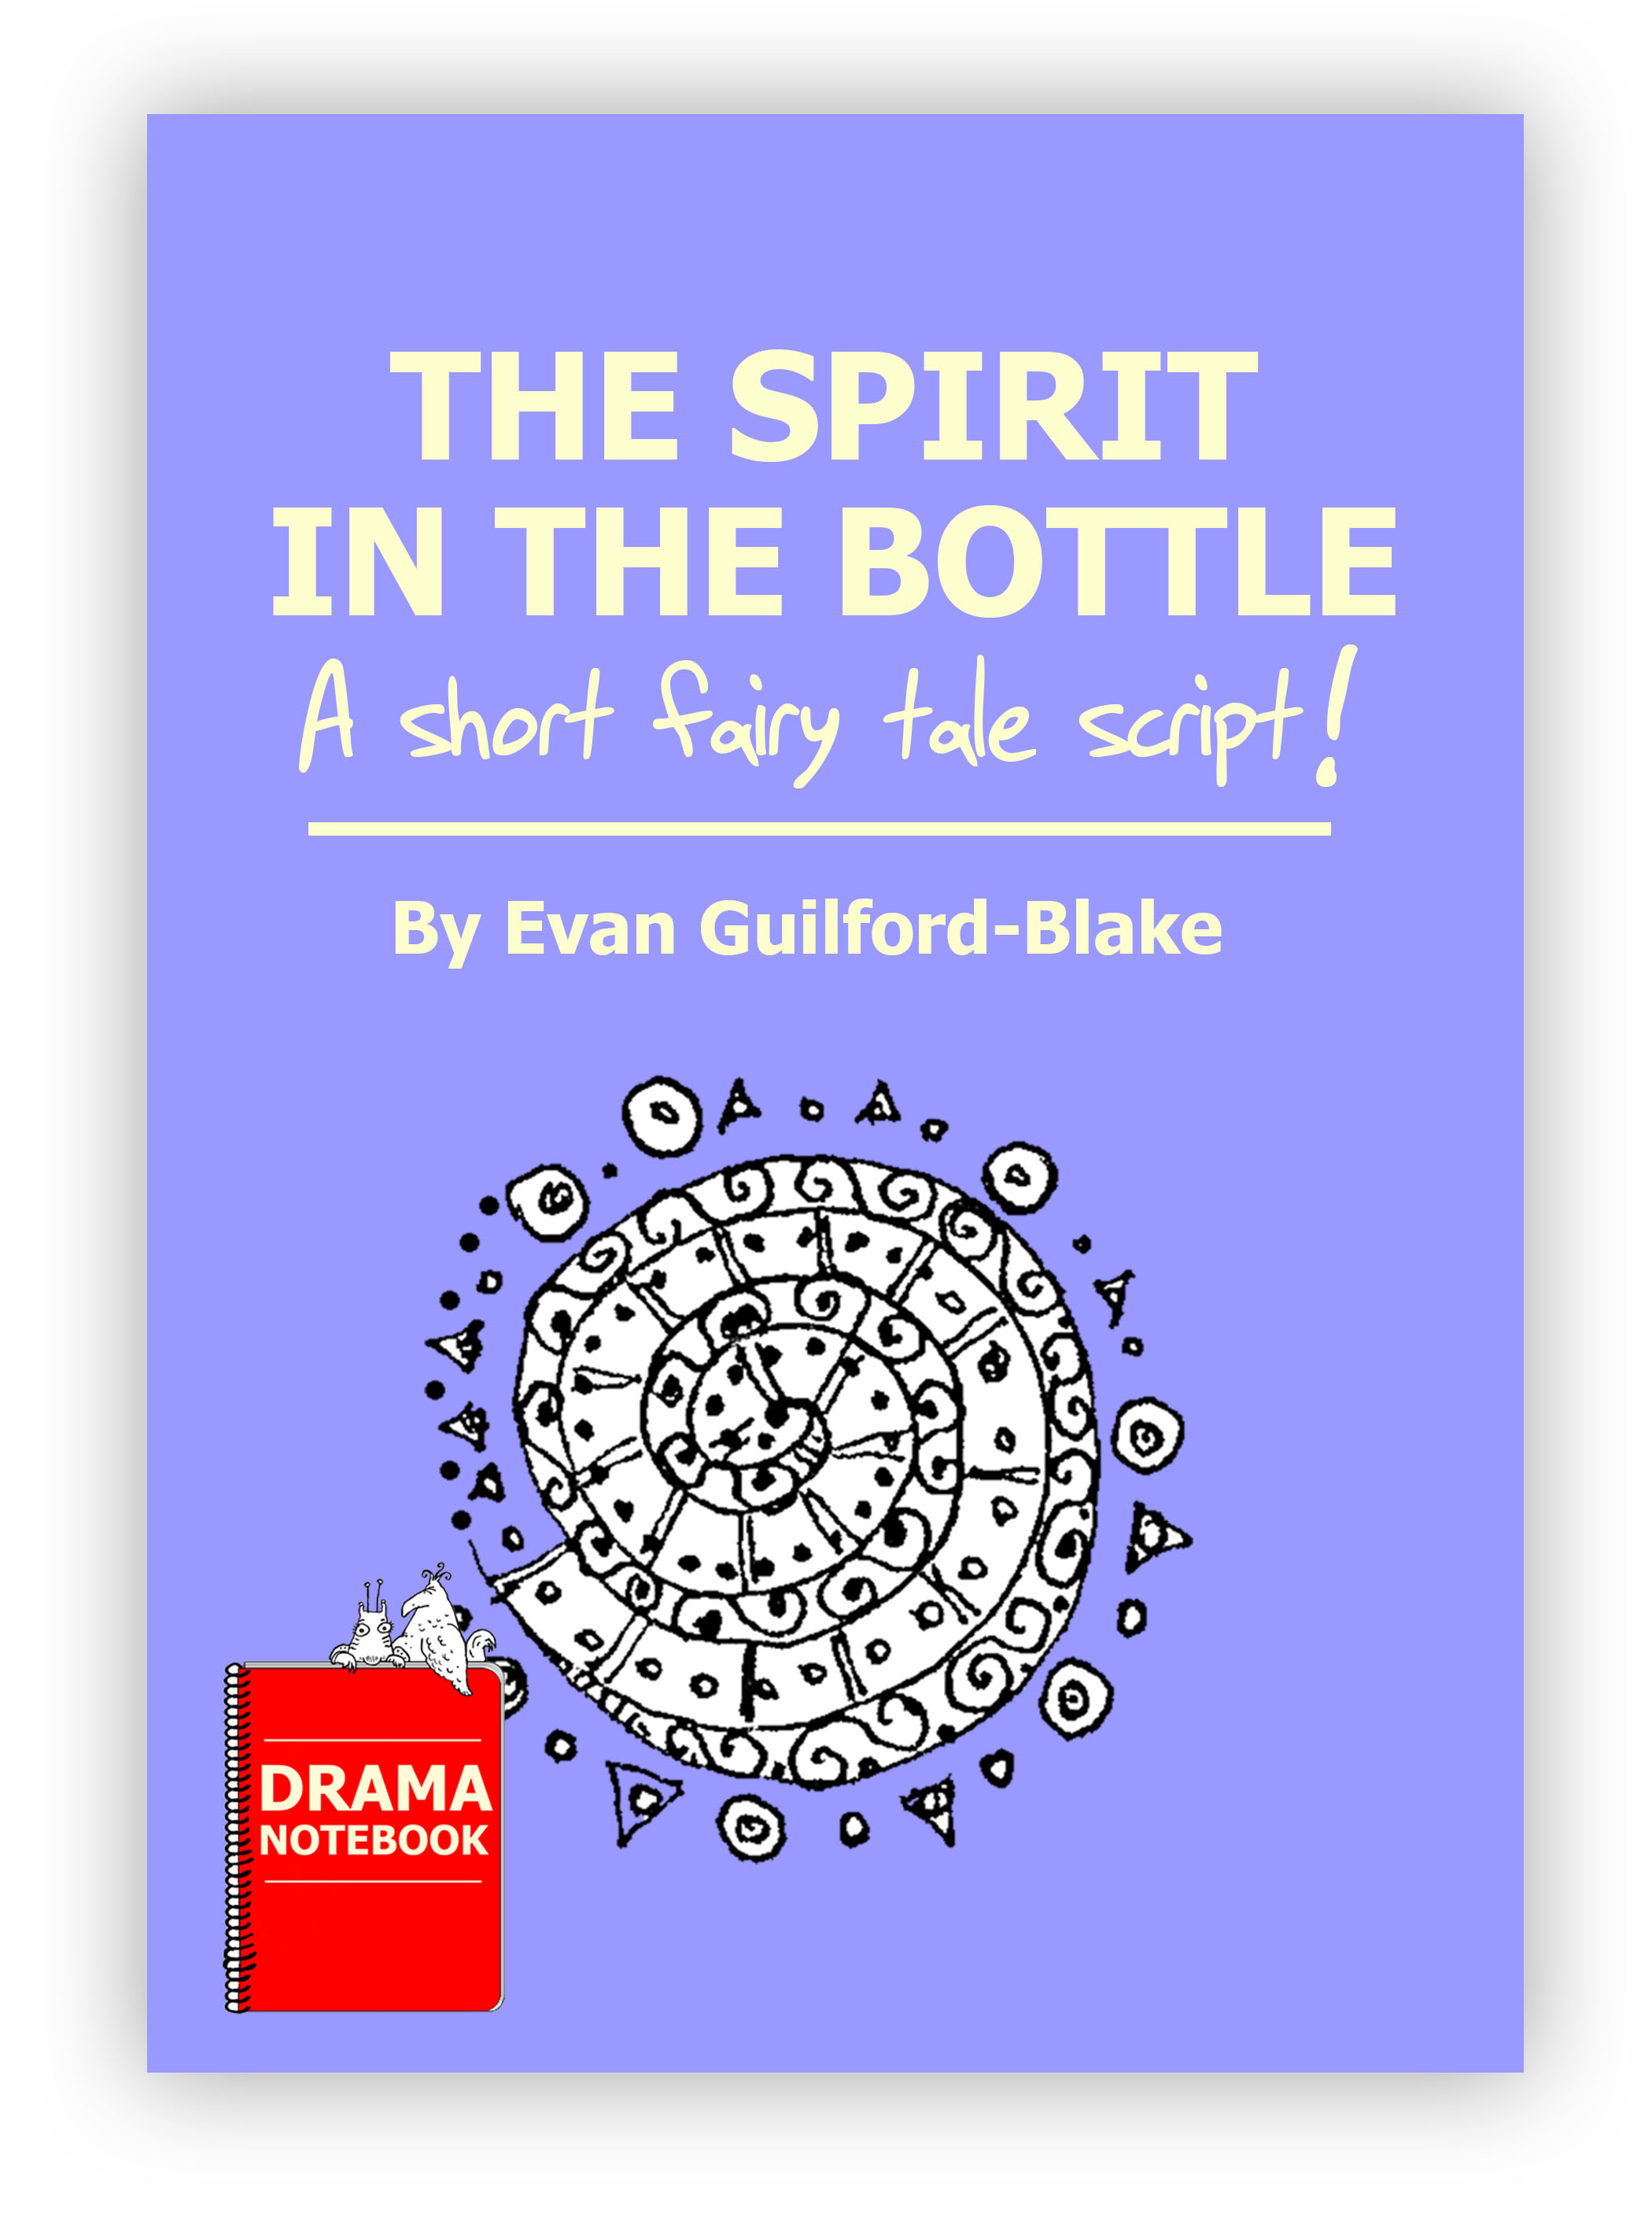 The Spirit in the Bottle